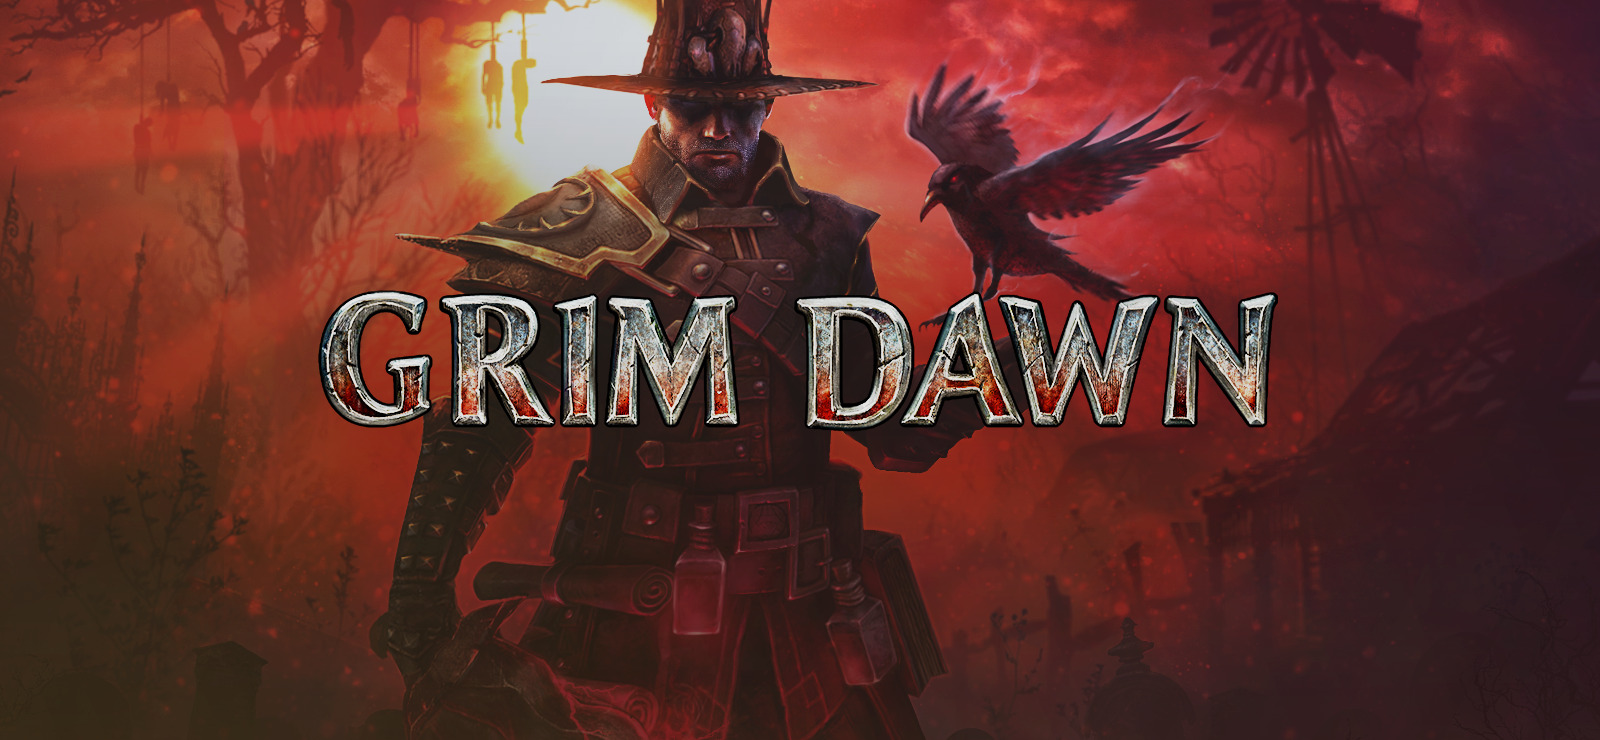 Grim Dawn Role playing game for PC